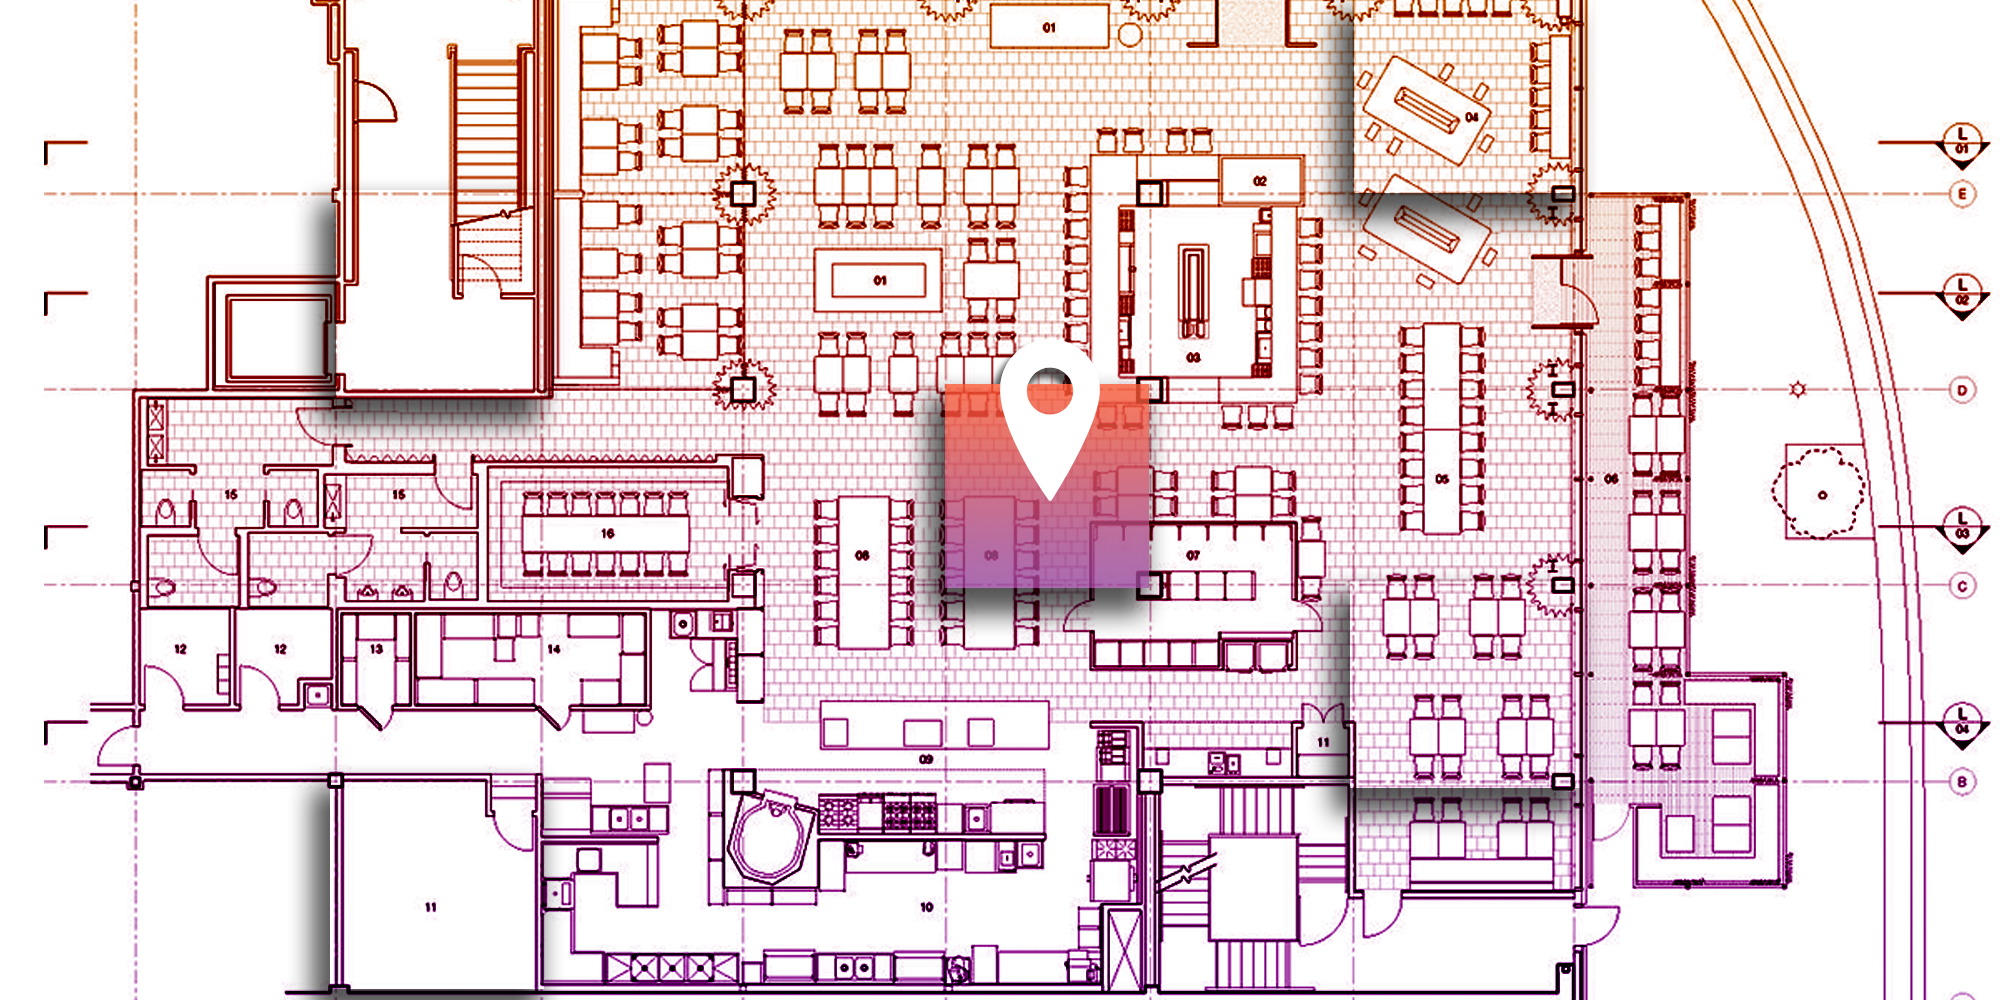 How Any App Could Track the Indoor Location of Everyone